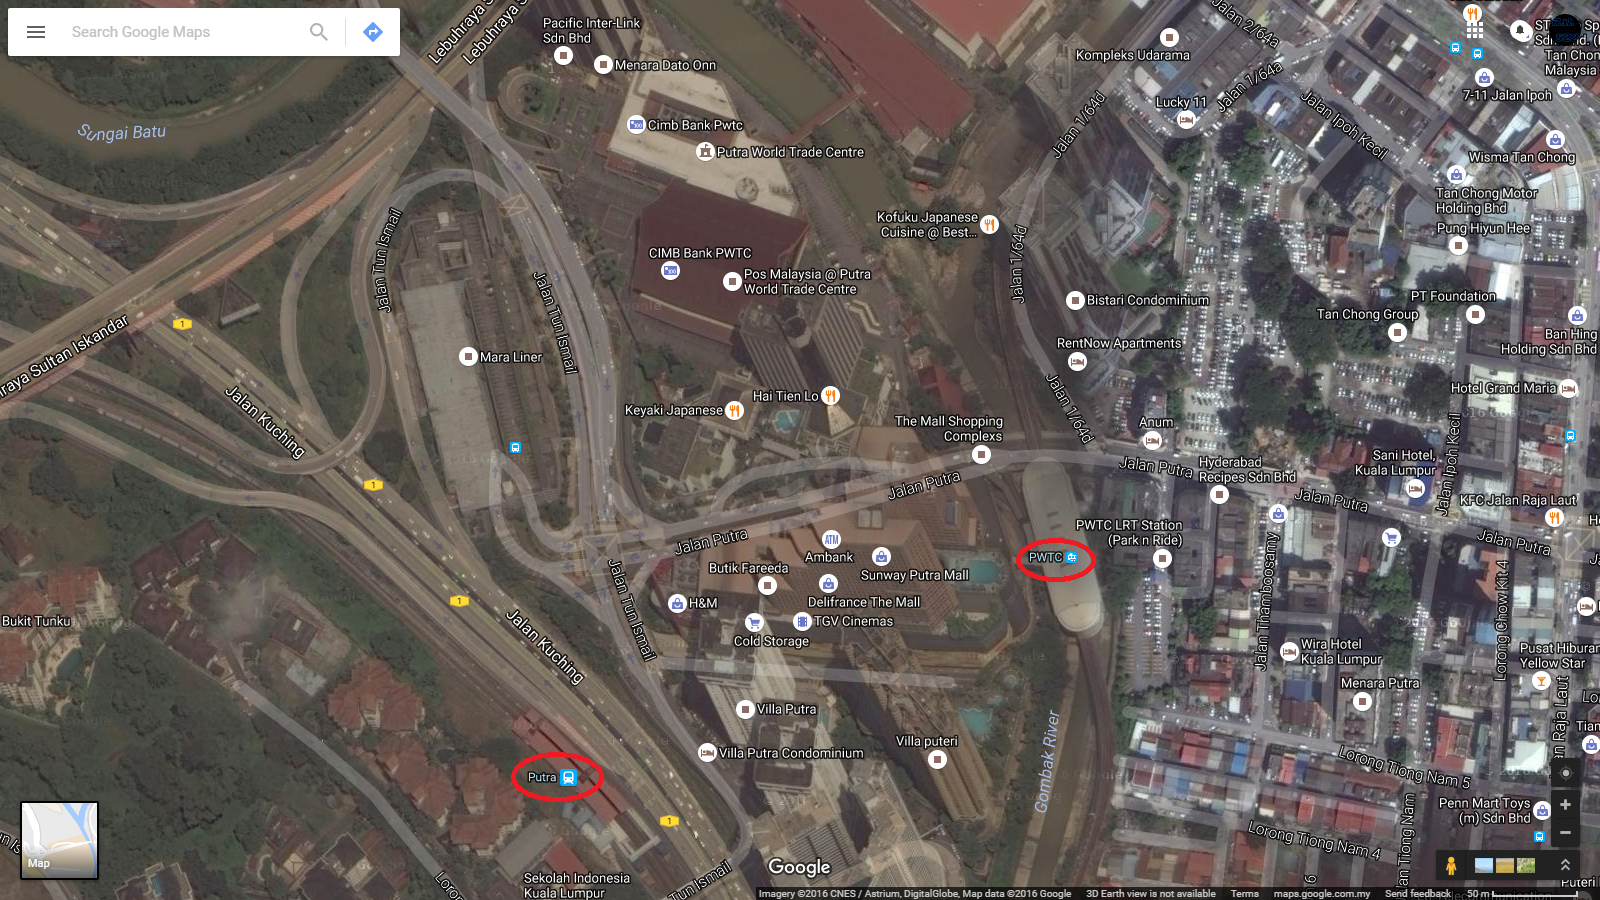 Remainunknown522 comic fiesta 2016 venue tickets announced satellite view of pwtc lrt station putra komuter station marked in red ovals and putra world trade centre gumiabroncs Gallery